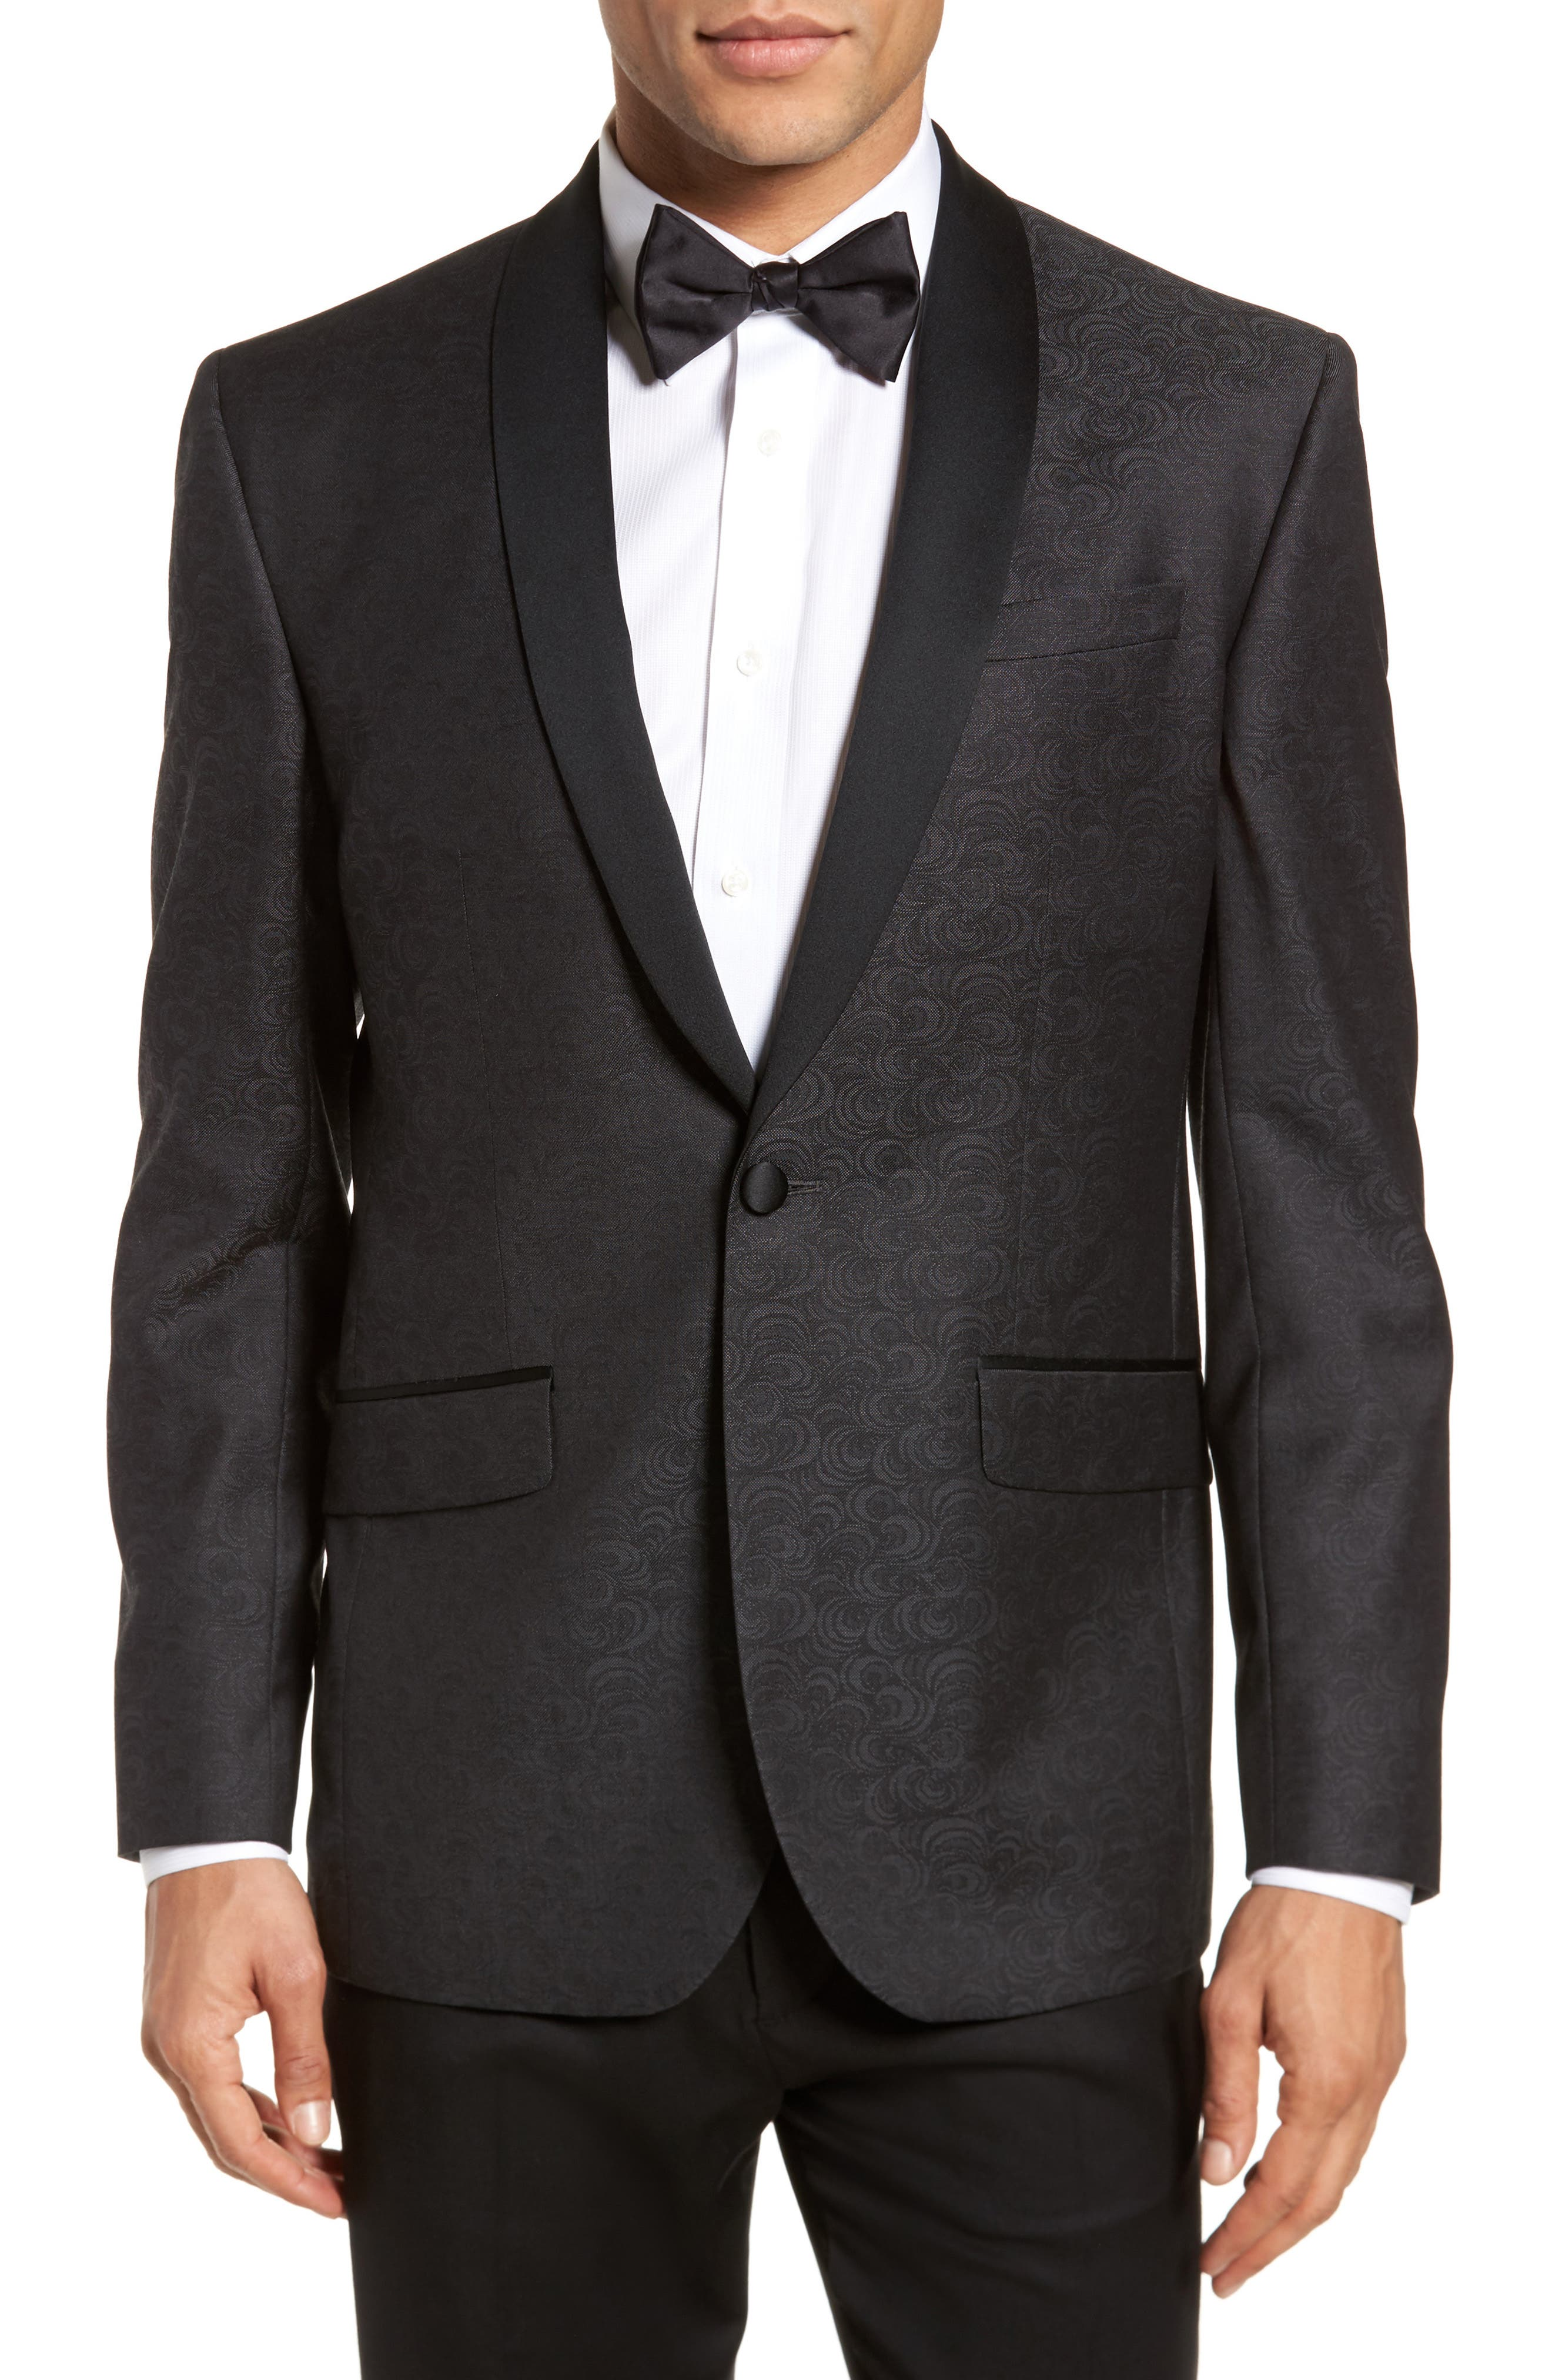 Josh Trim Fit Wool Dinner Jacket,                         Main,                         color, Black